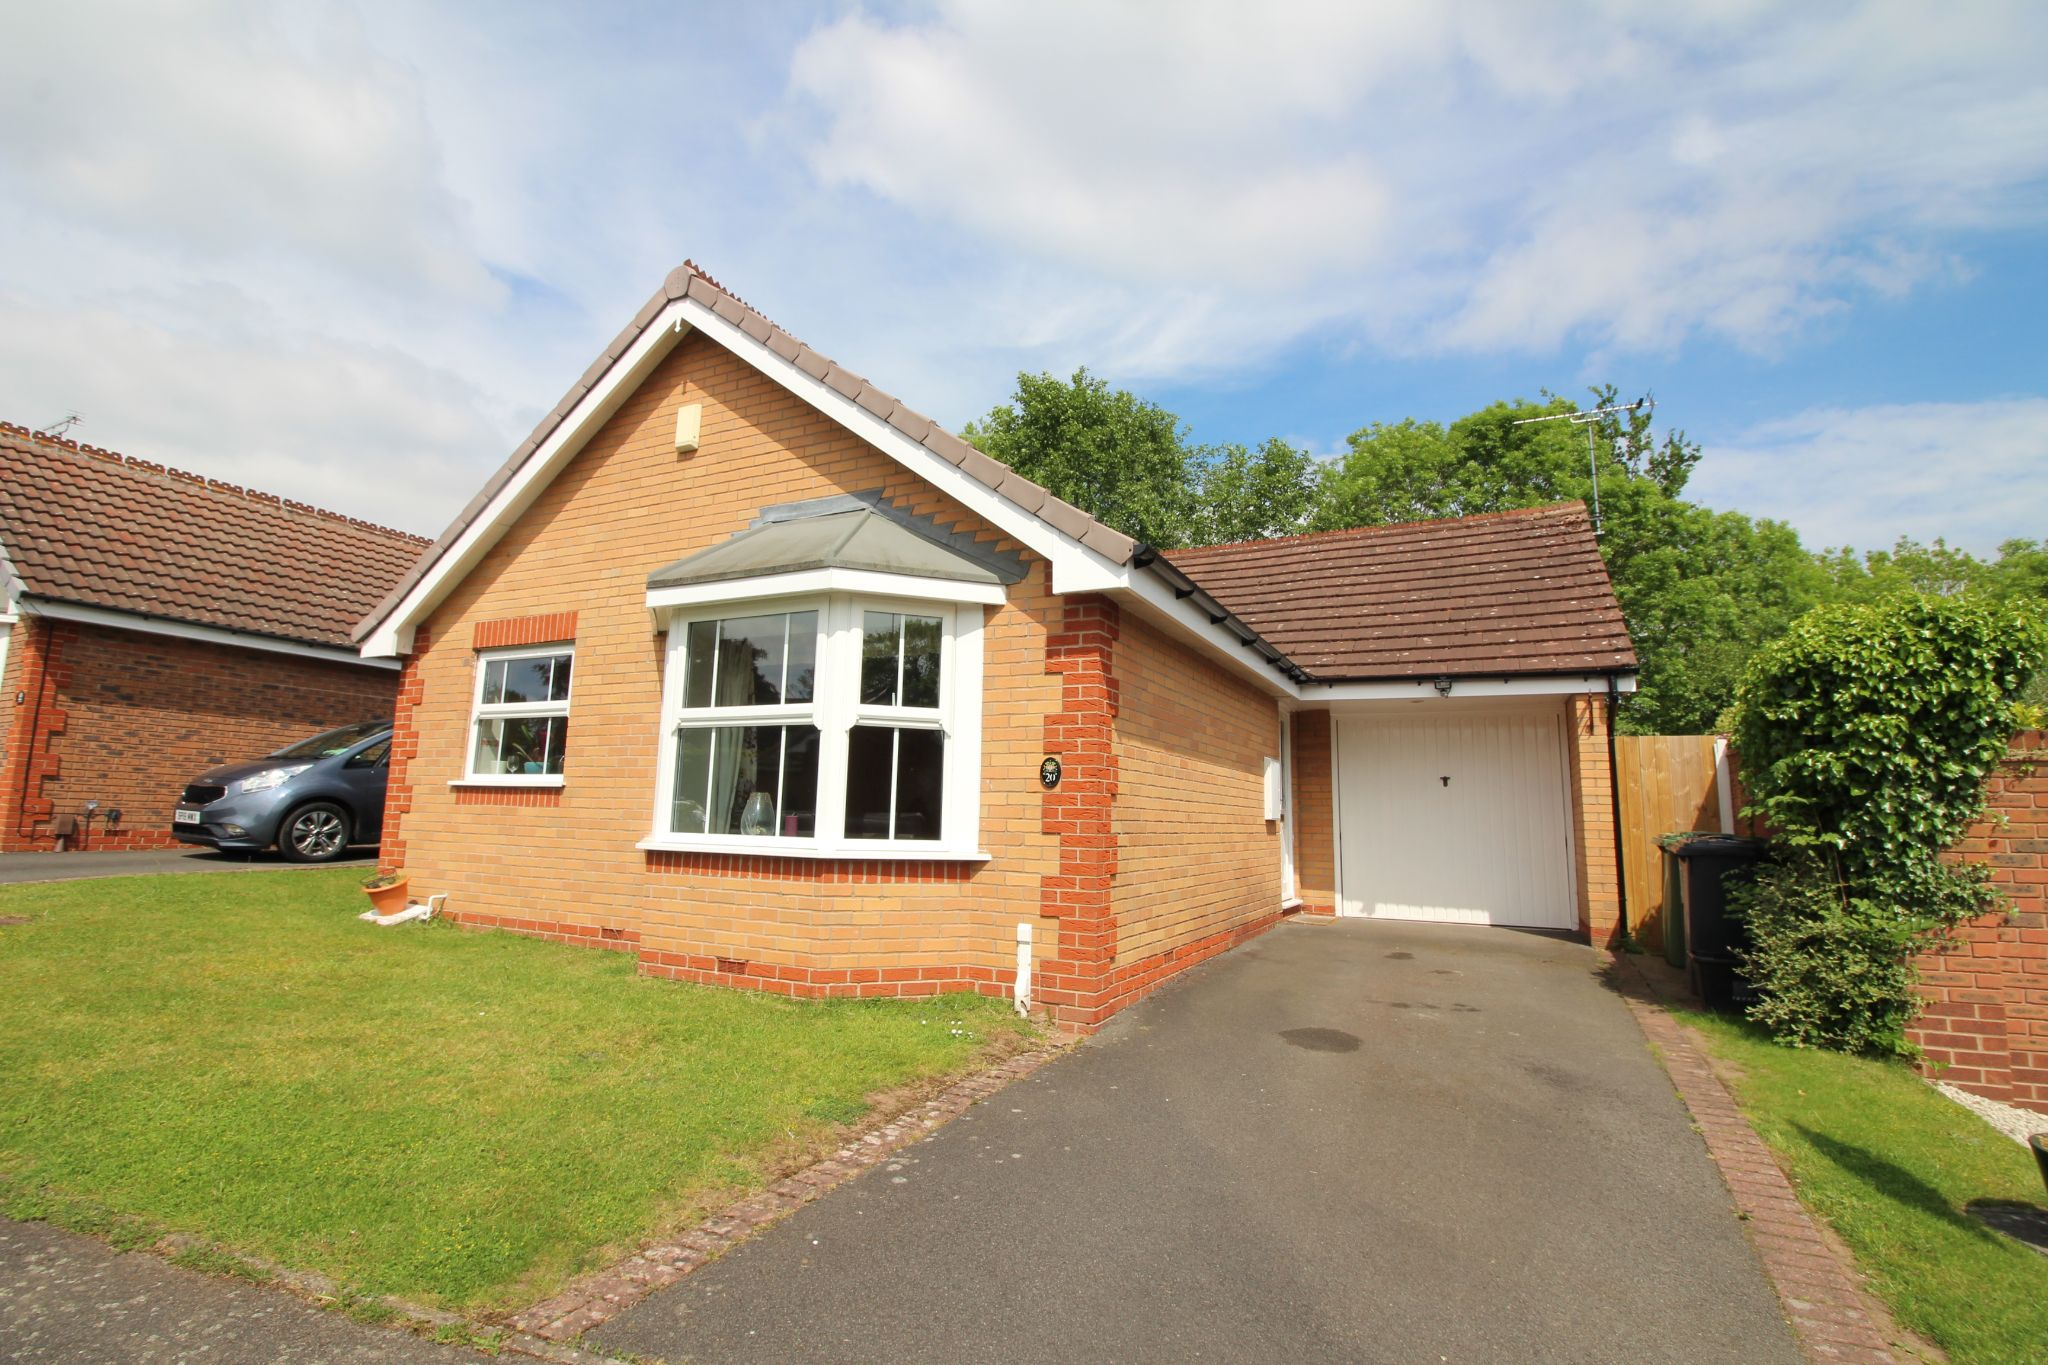 2 bedroom detached bungalow For Sale in Solihull - Photograph 1.